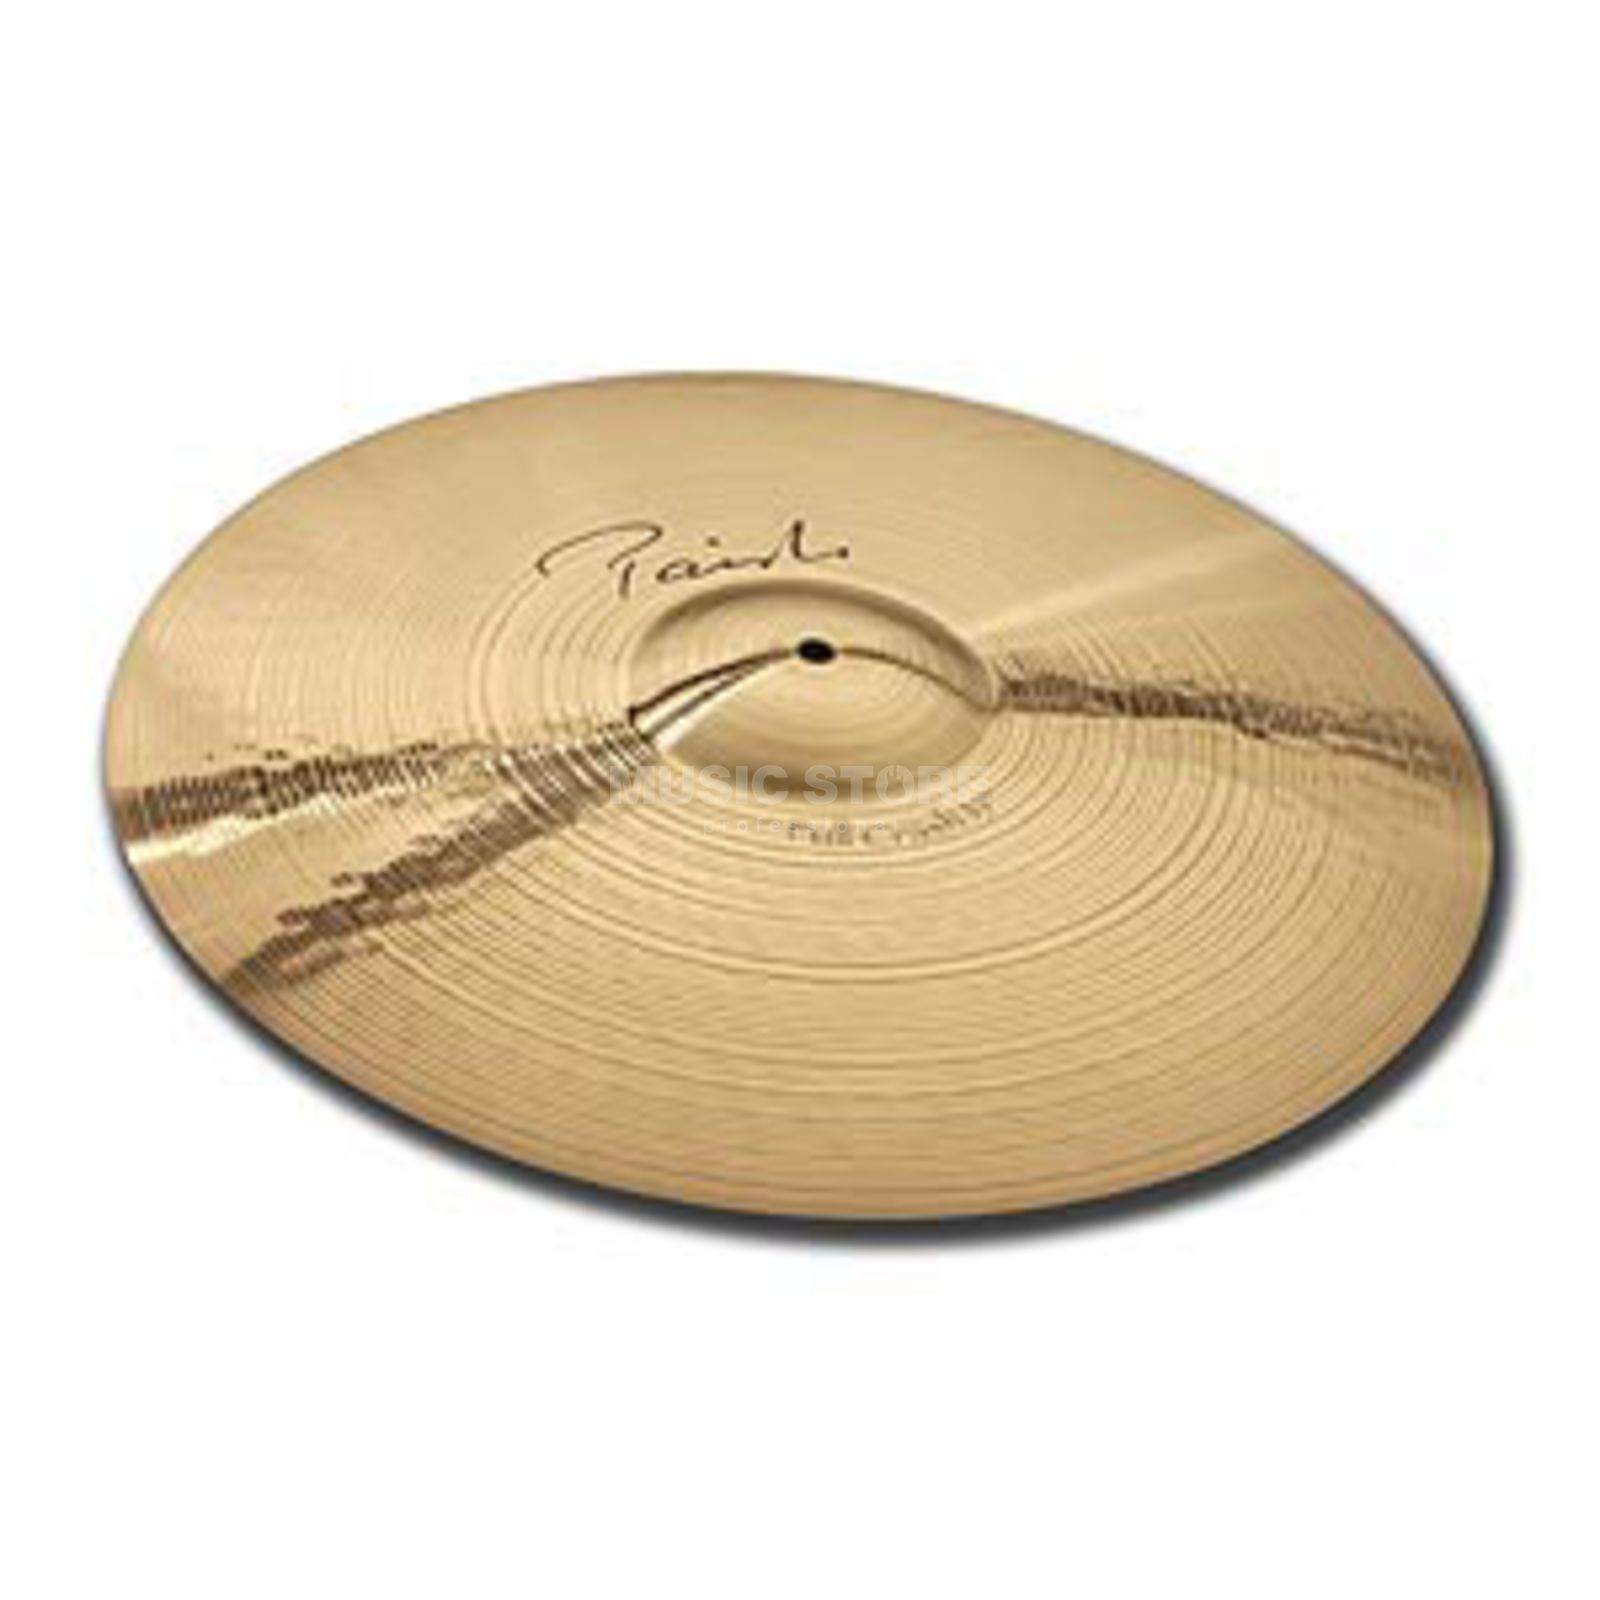 "Paiste Signature Full Crash 18"" Reflector Finish Produktbillede"